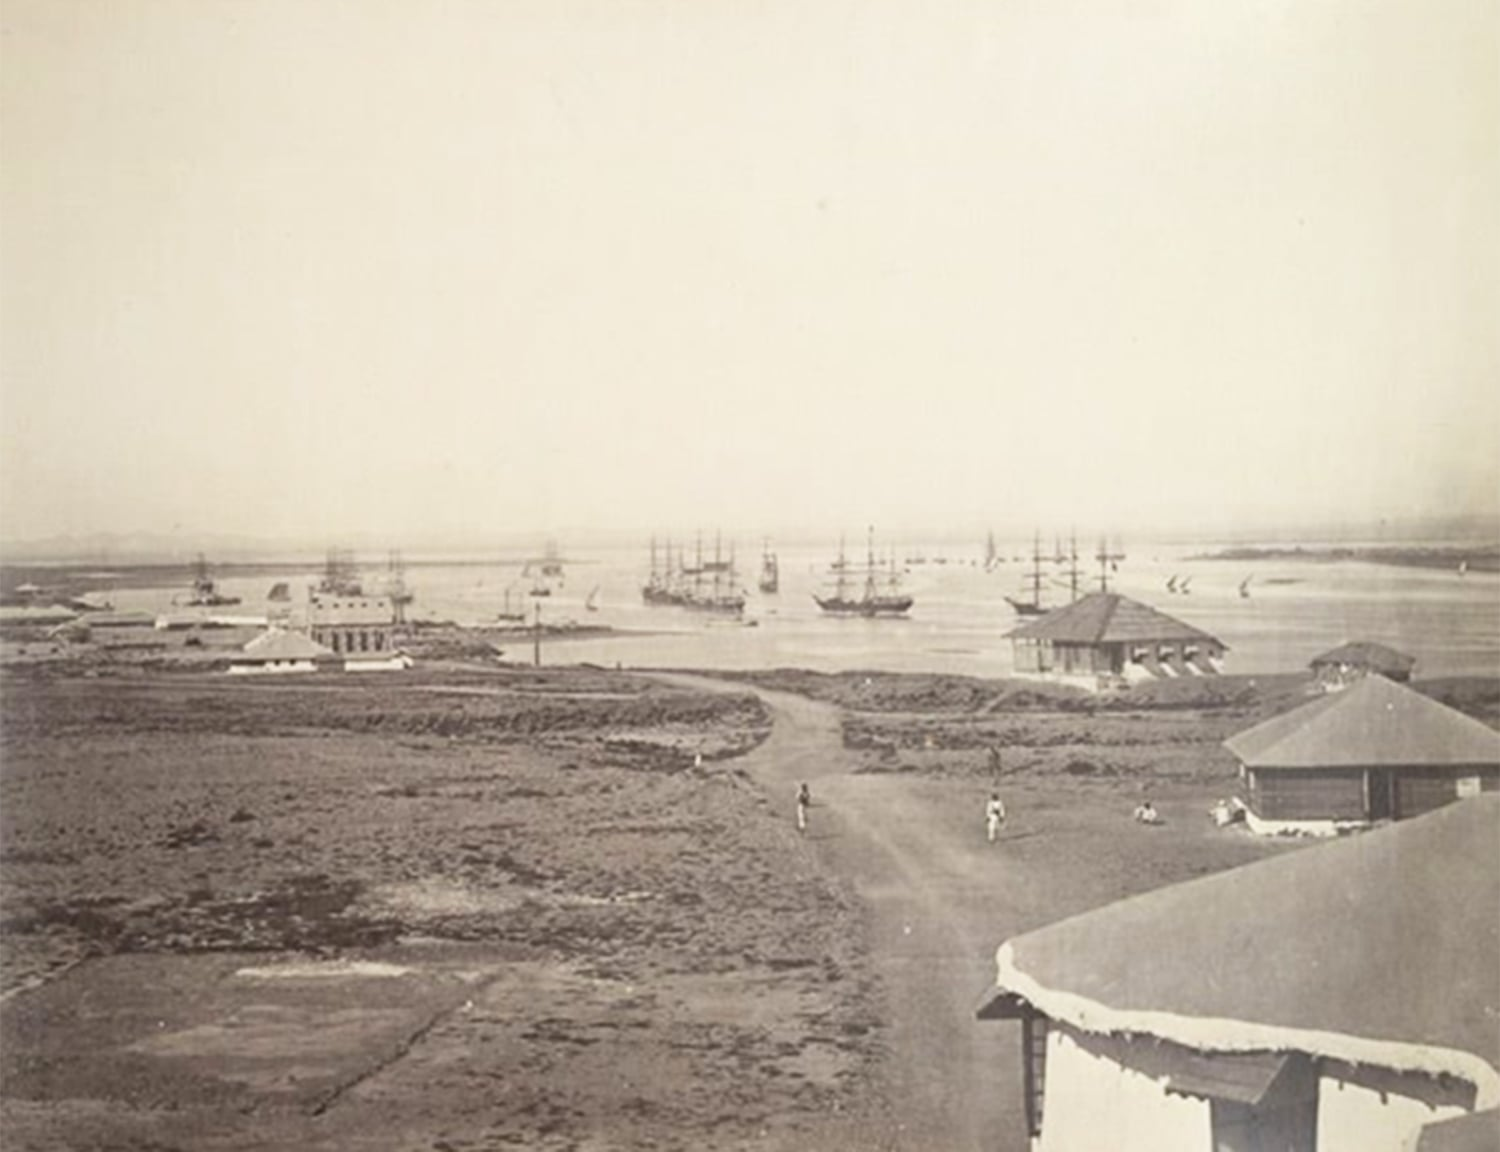 An 1860 photograph of British ships entering Karachi waters (Arabian Sea). By now the city had been made Sindh's capital and absorbed into British India.